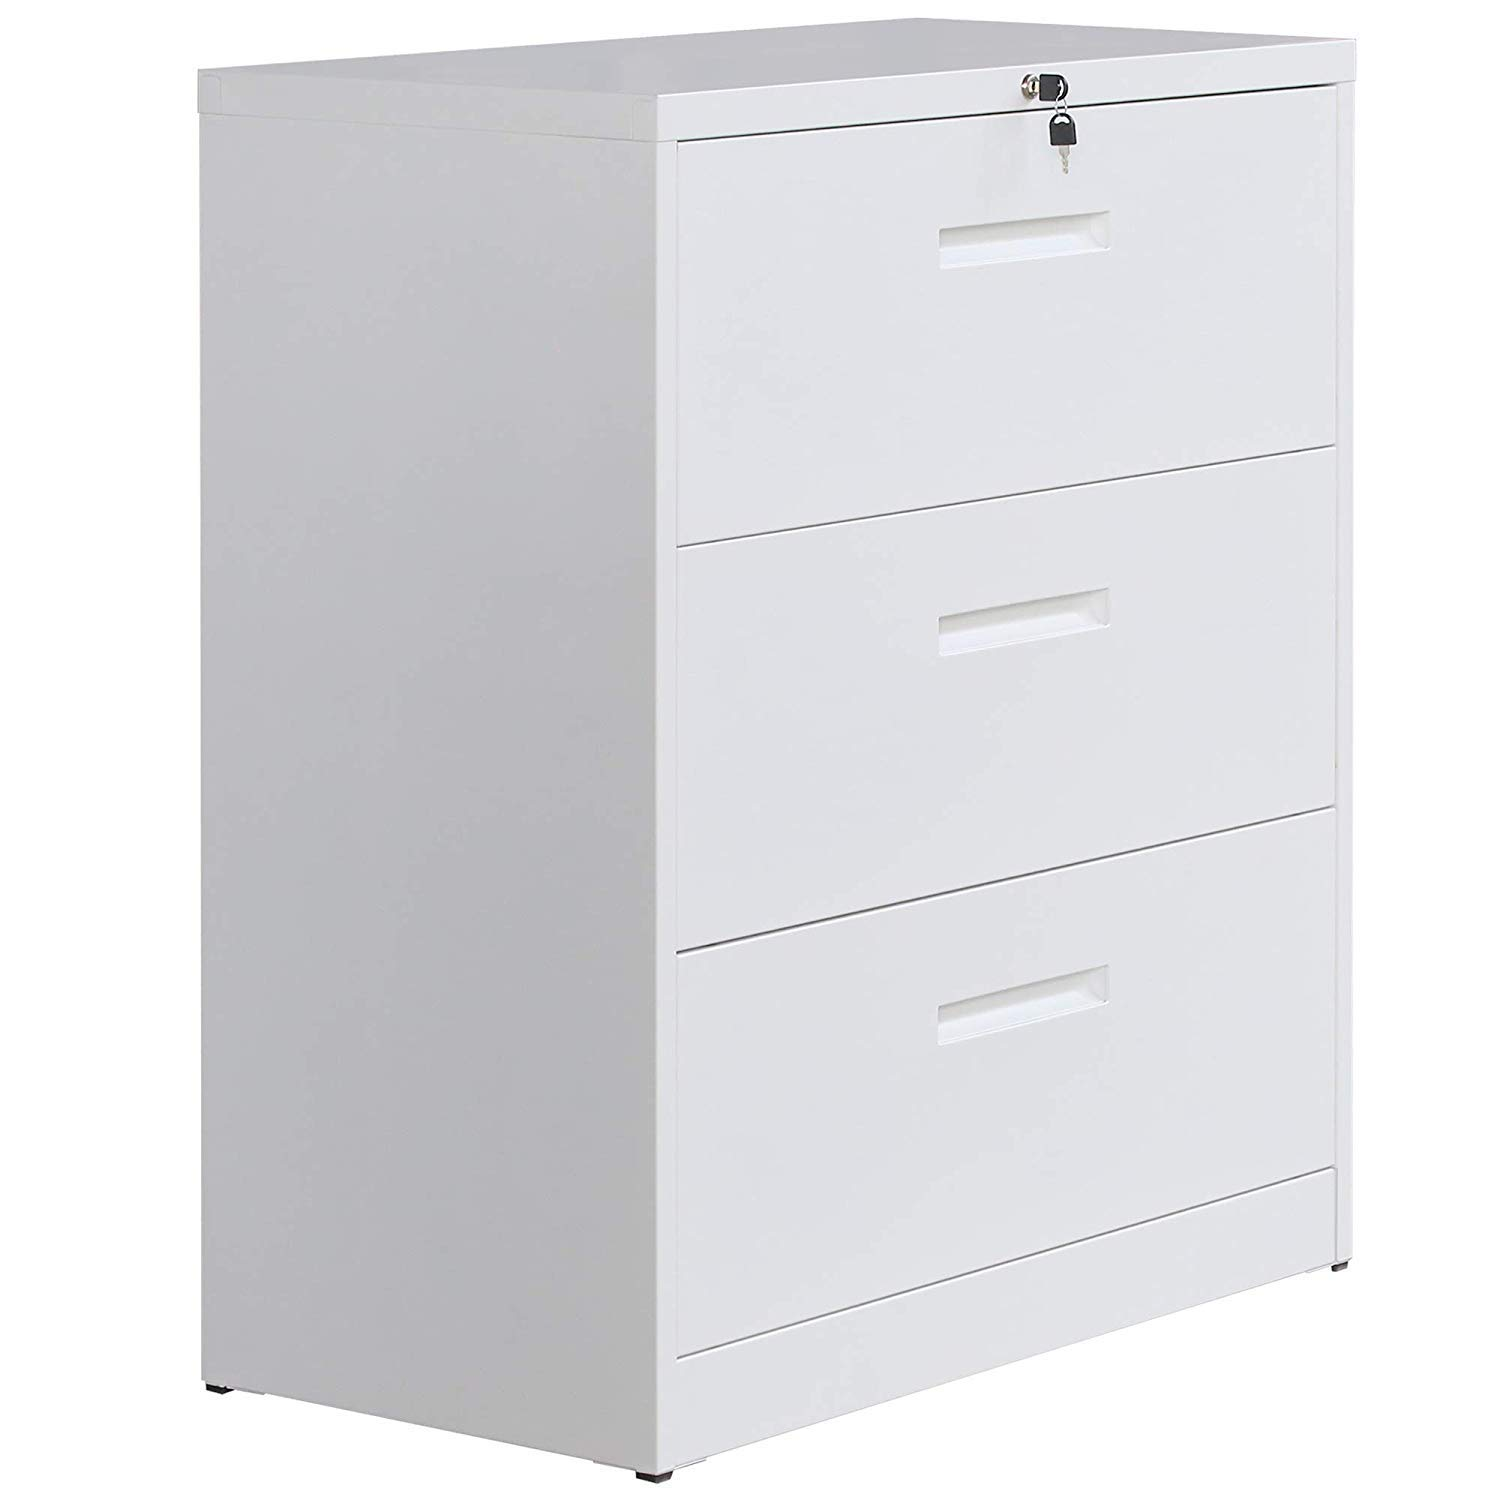 MIERES 1 Lockable Metal Heavy Duty 3 Drawer Lateral File Cabinet (White), 25.417.720.3